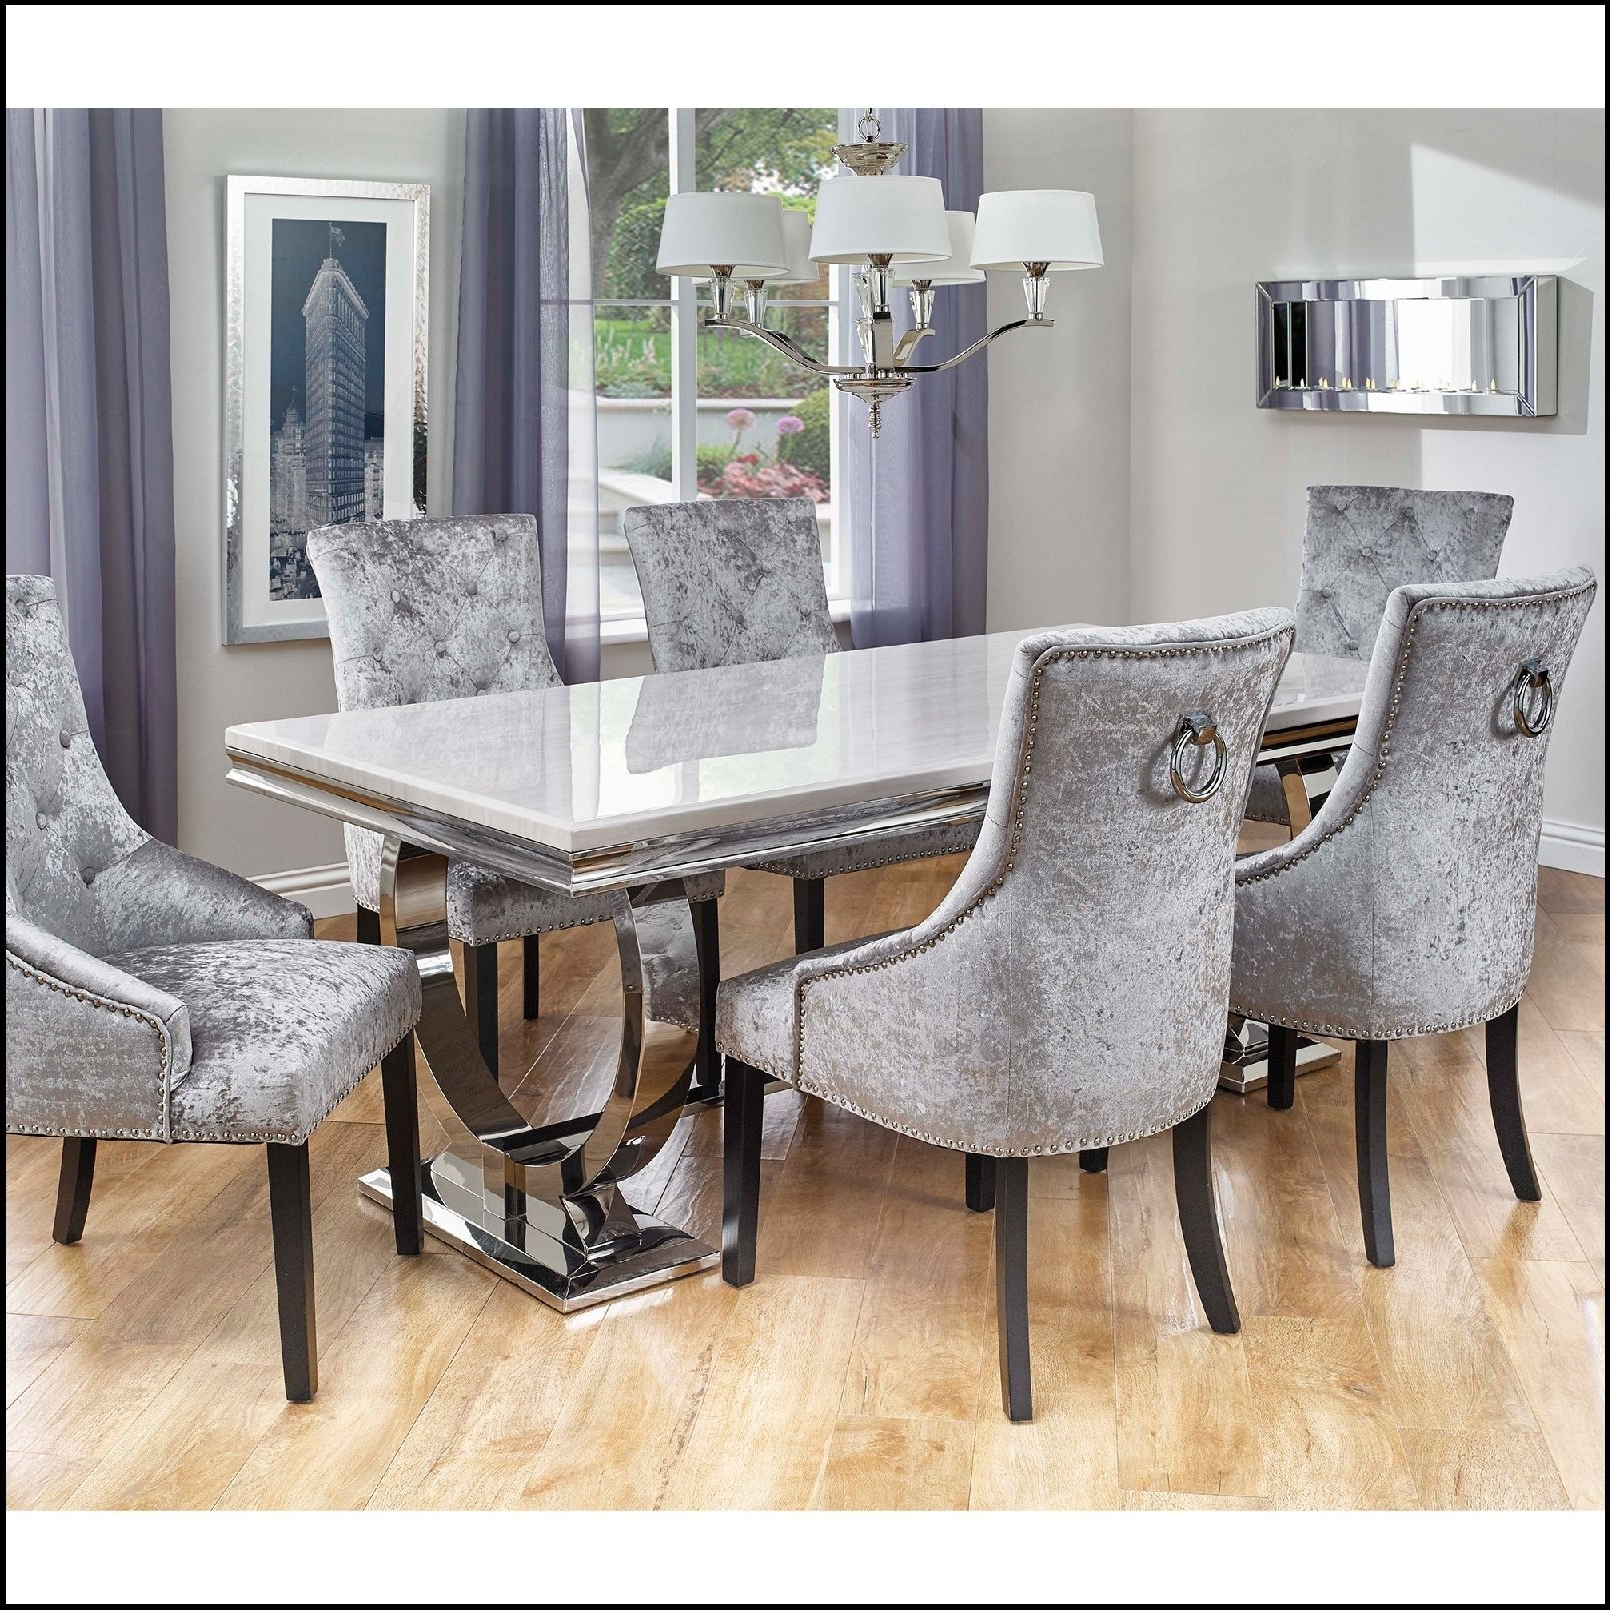 Beautifull Dining Room Tables With 6 Chairs Dining Room Design With Inside Most Popular 6 Seat Dining Tables (Gallery 6 of 25)